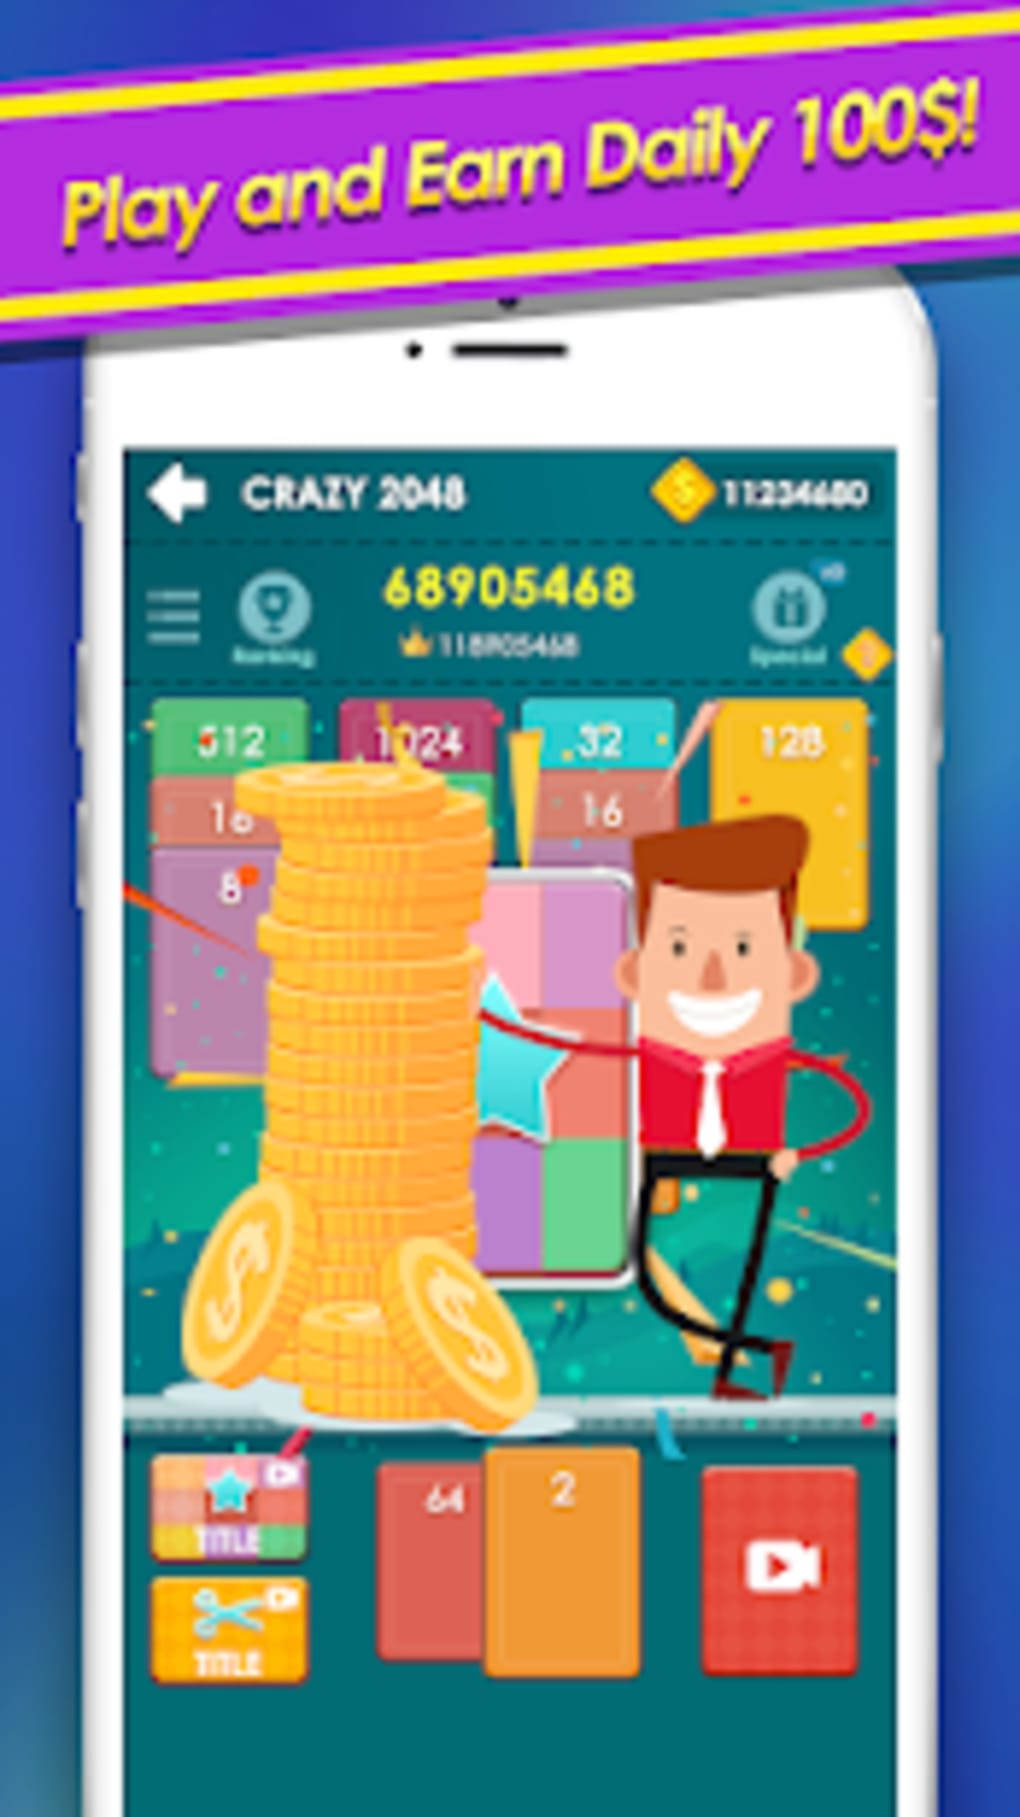 2048 solitaire - 2048 Cards game to win real money for